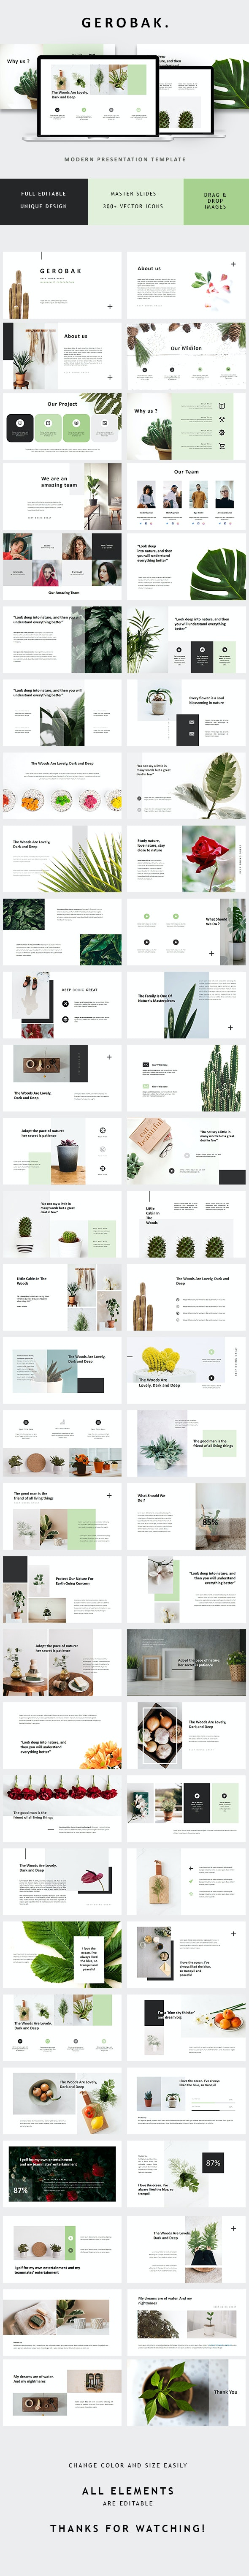 Gerobak Powerpoint Presentation Template - PowerPoint Templates Presentation Templates